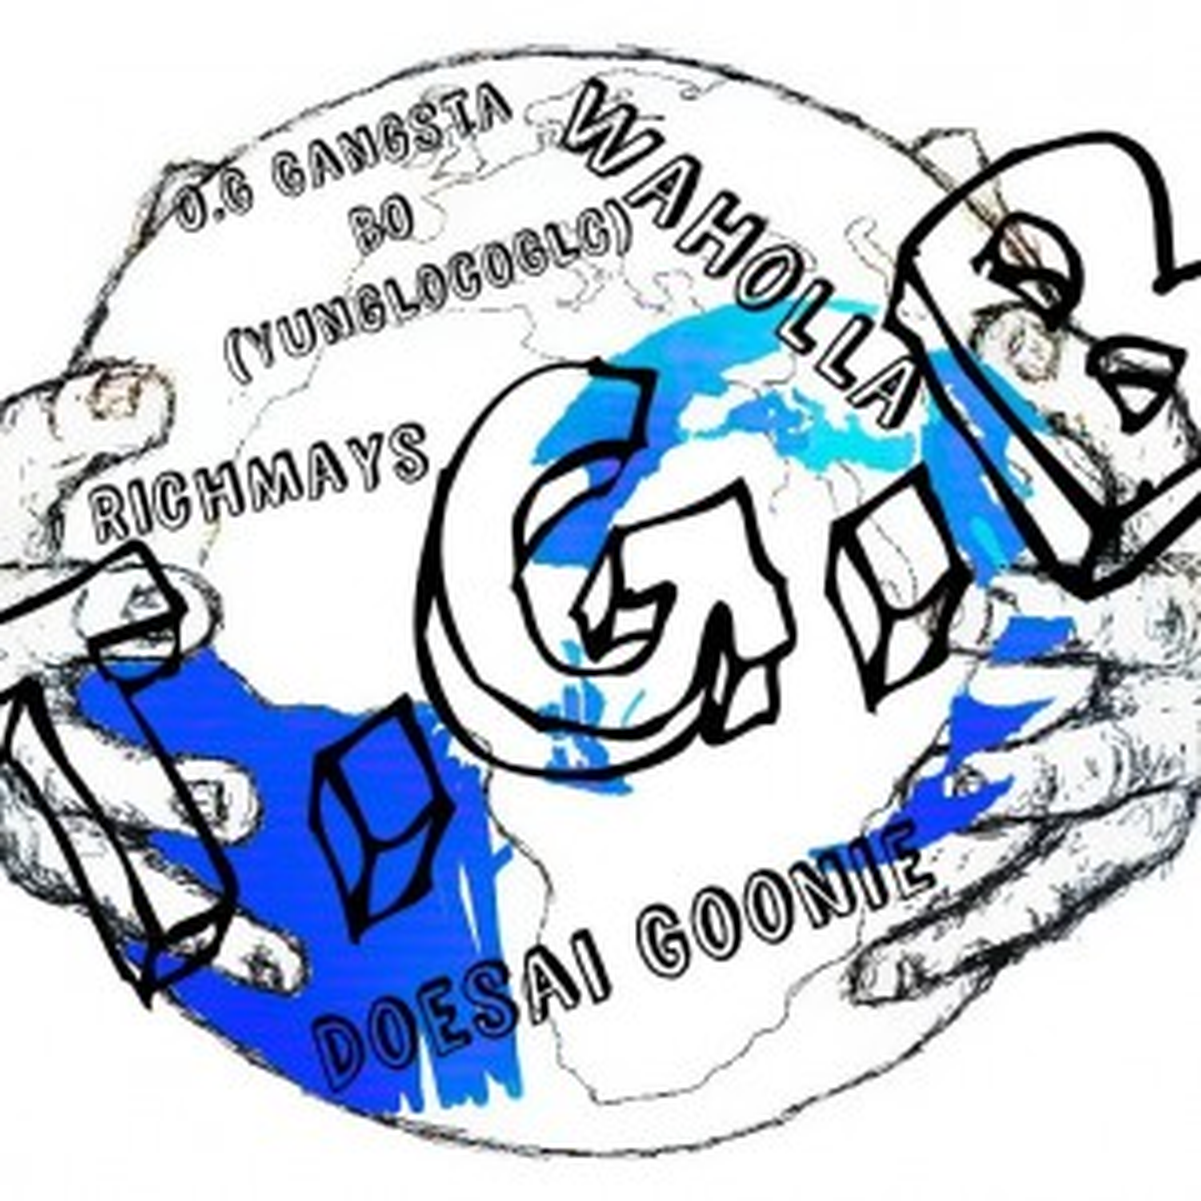 T.G.B Tha Music Group wiki, T.G.B Tha Music Group review, T.G.B Tha Music Group history, T.G.B Tha Music Group news